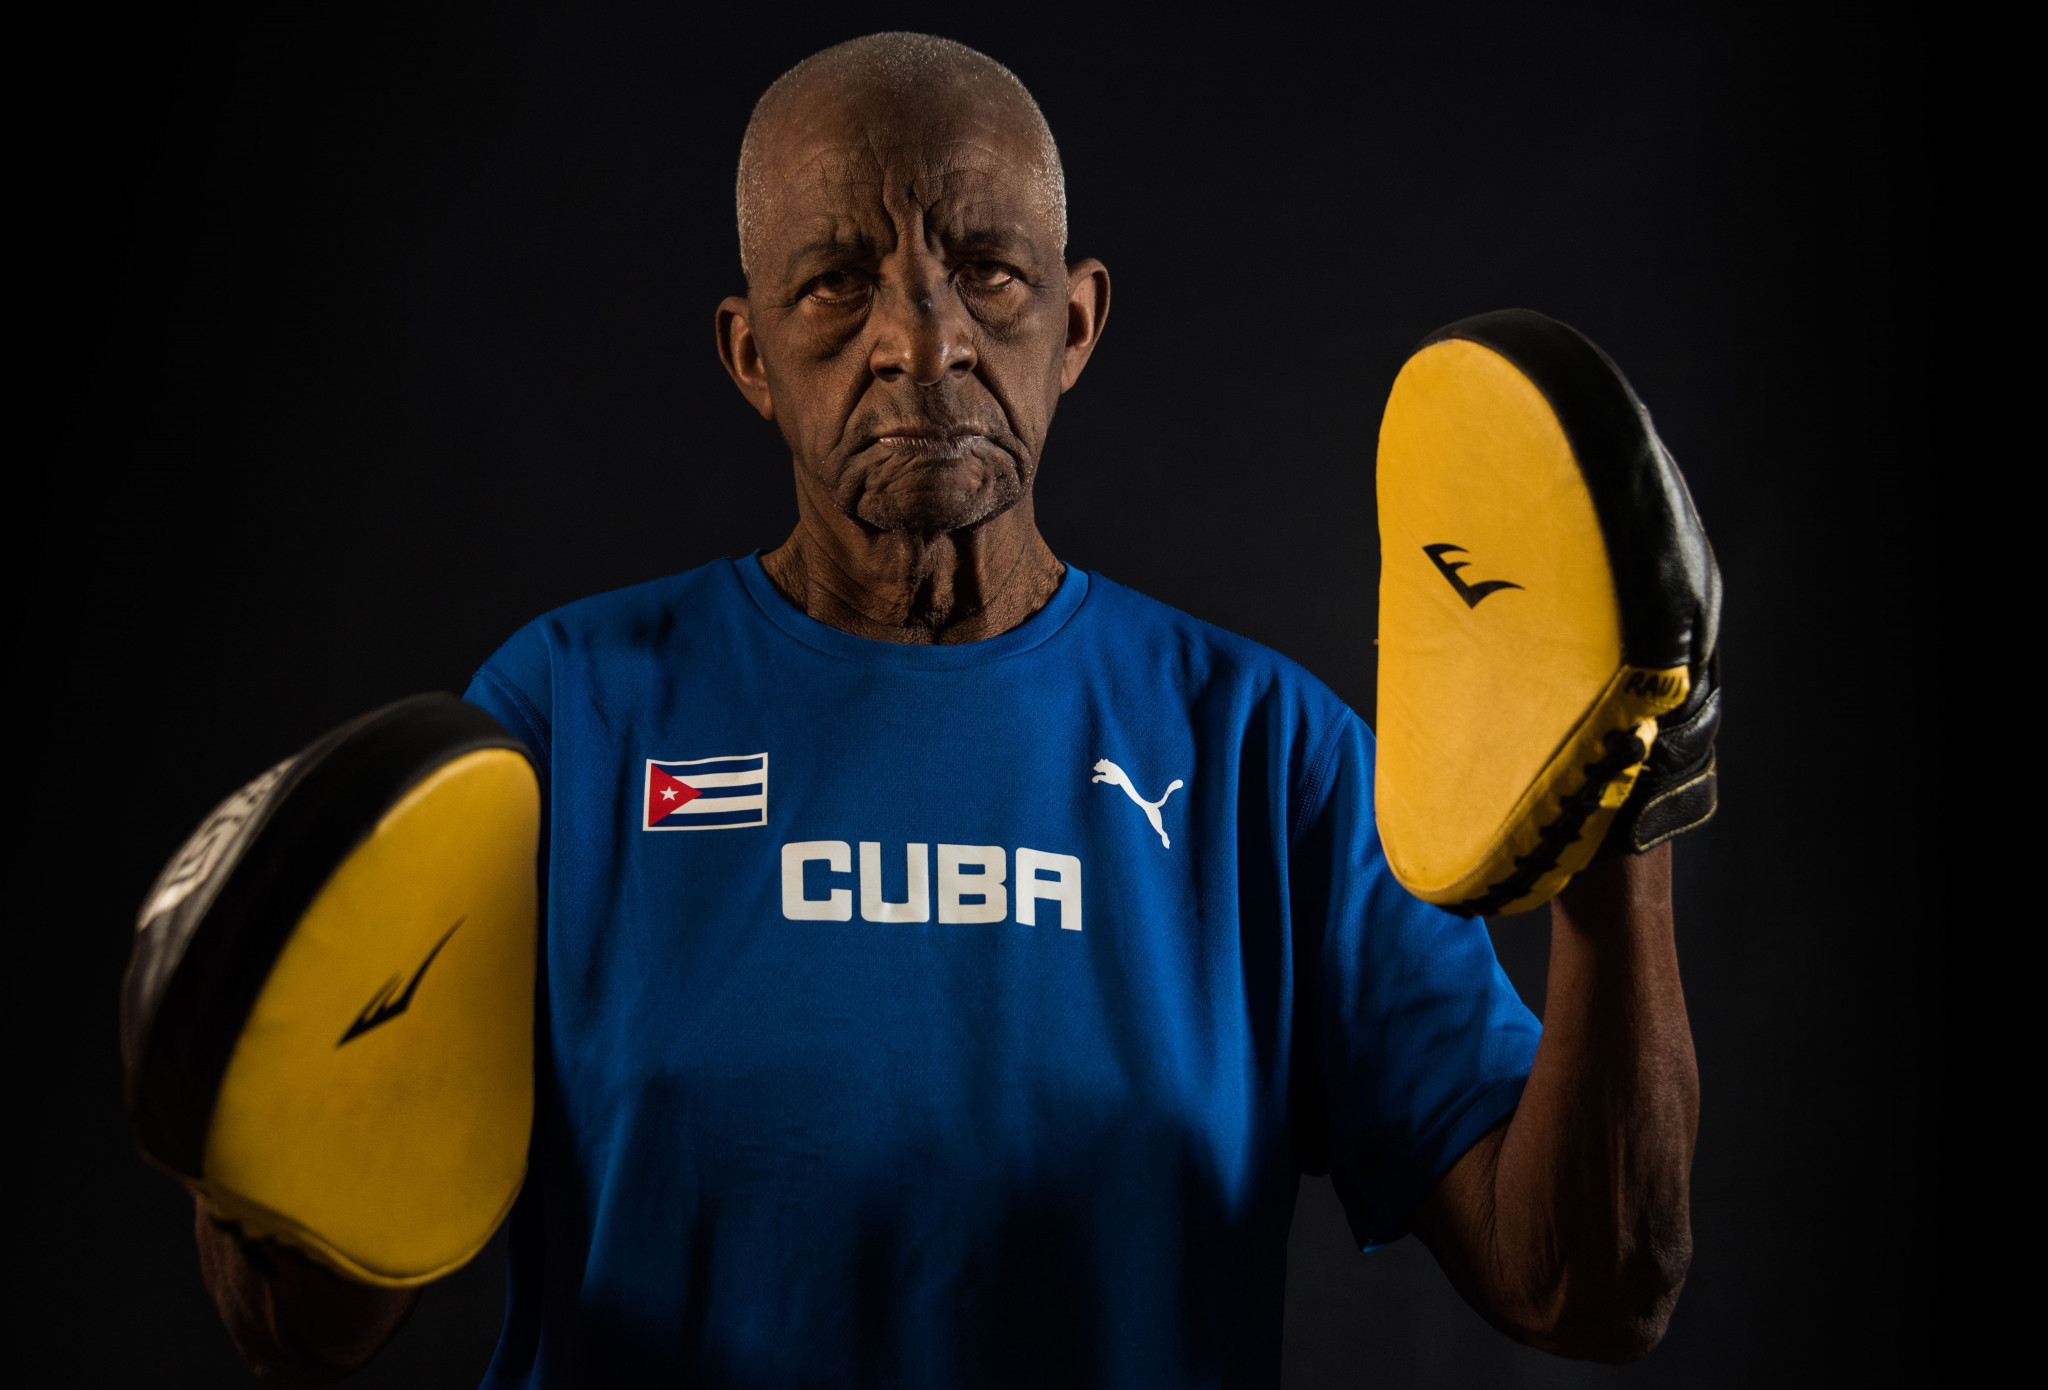 Legendary trainer Alcides Sagarra believes Cuba should have a women's boxing team ©Getty Images